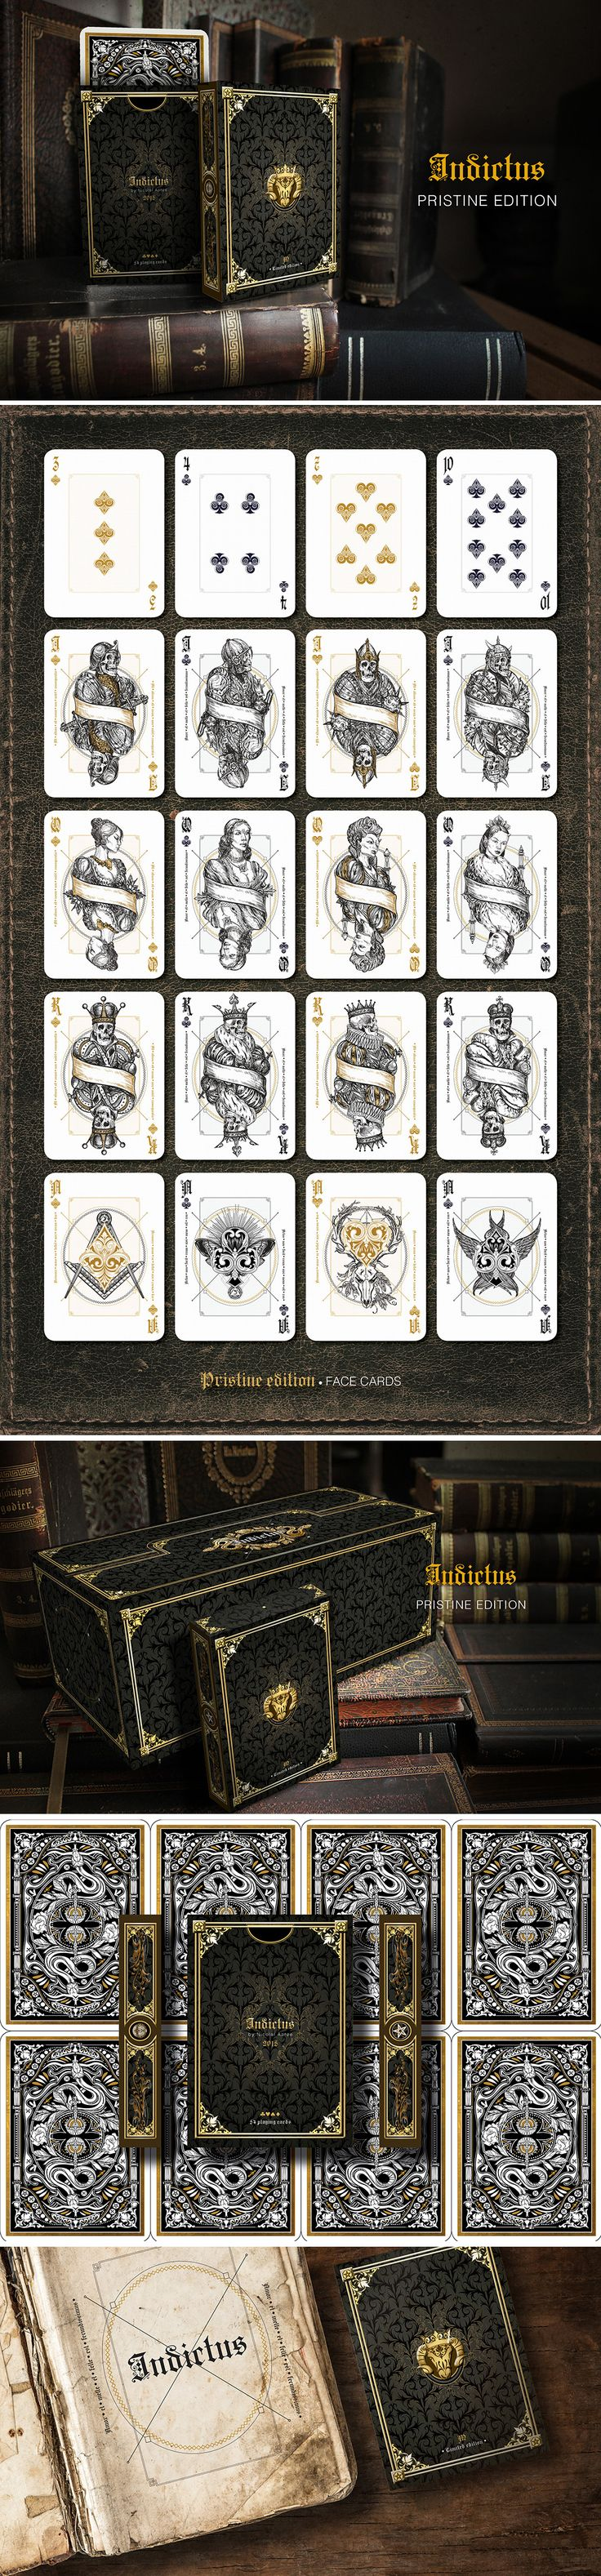 Indictus by Nicolai Aarøe - Pristine edition  2 embossed, gold foiled, metallic back inked, limited edition, deluxe decks of dark philosophy, and mysticism. Inspired by the Macbeth.  Learn more: https://www.kickstarter.com/projects/nicolaiaaroe/indictus-playing-cards